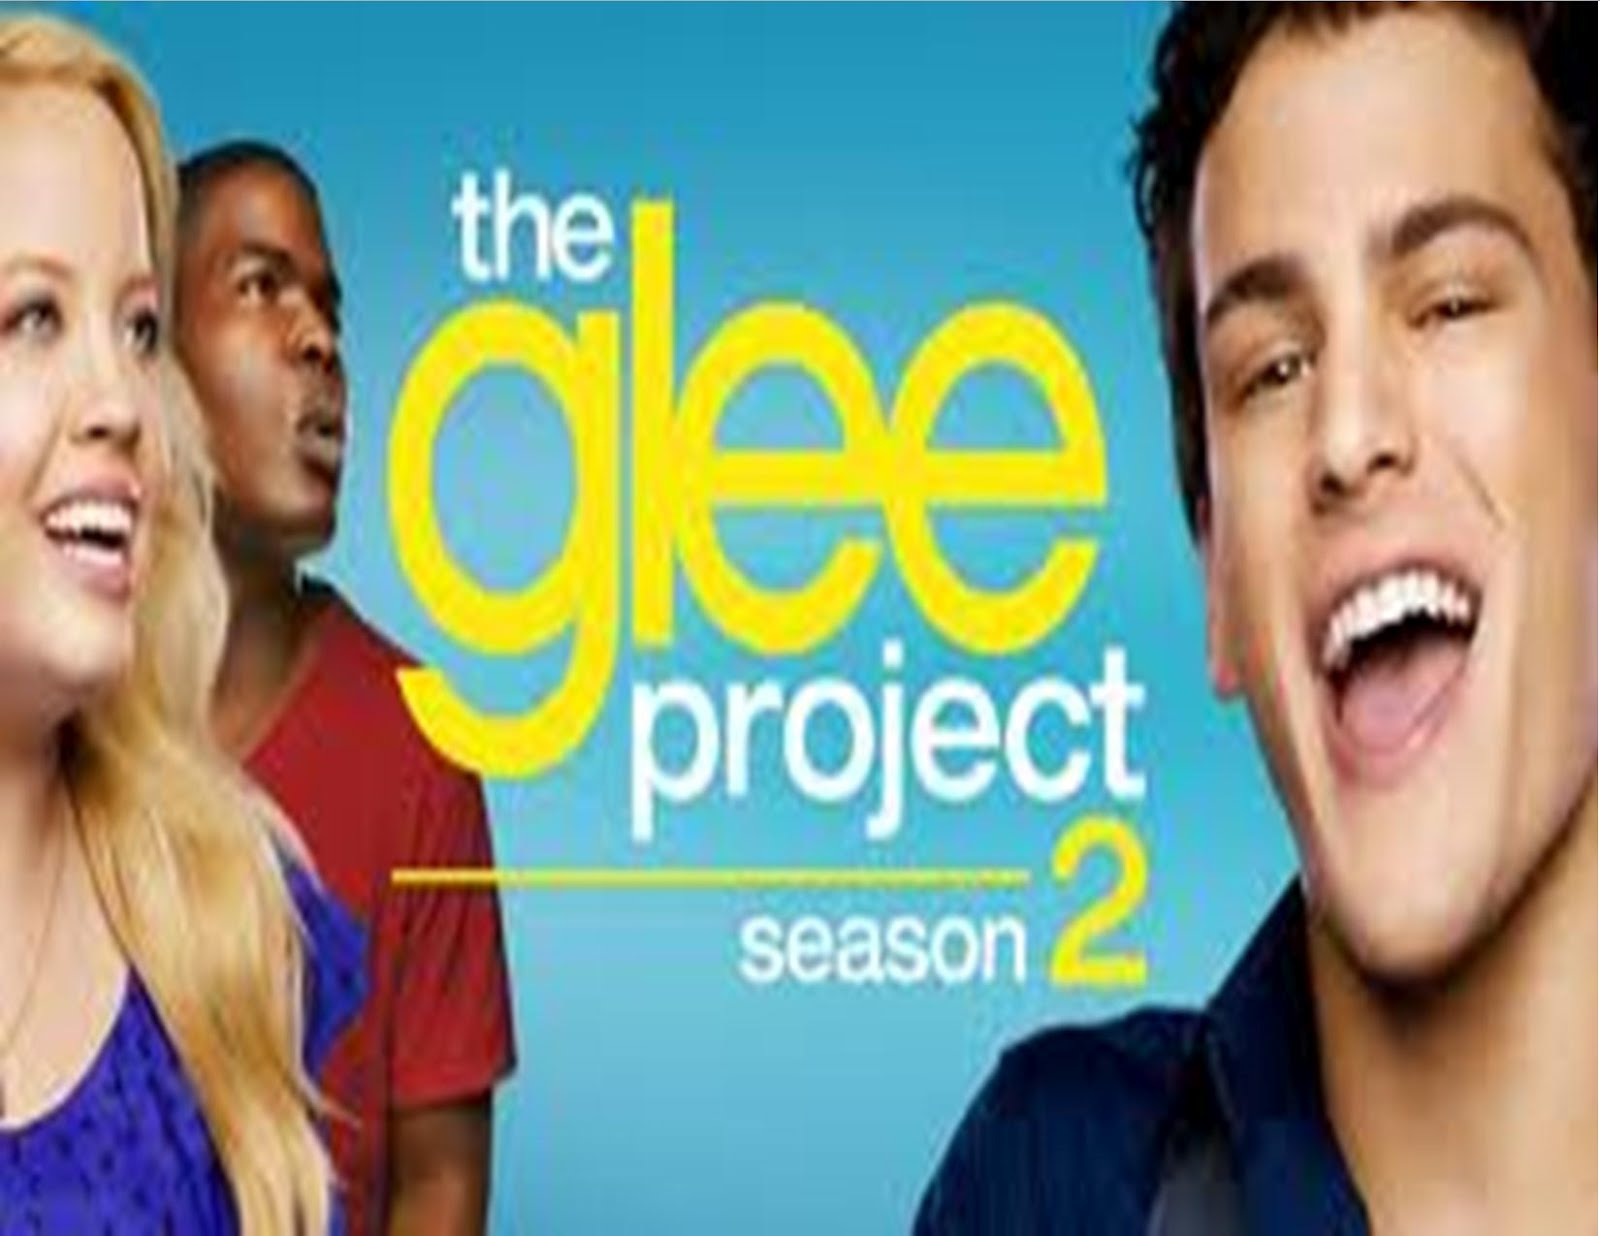 glee project full episodes Watch the glee project episodes online visit sidereel to access links to episodes, show schedules, reviews, recaps and more sign up for free.